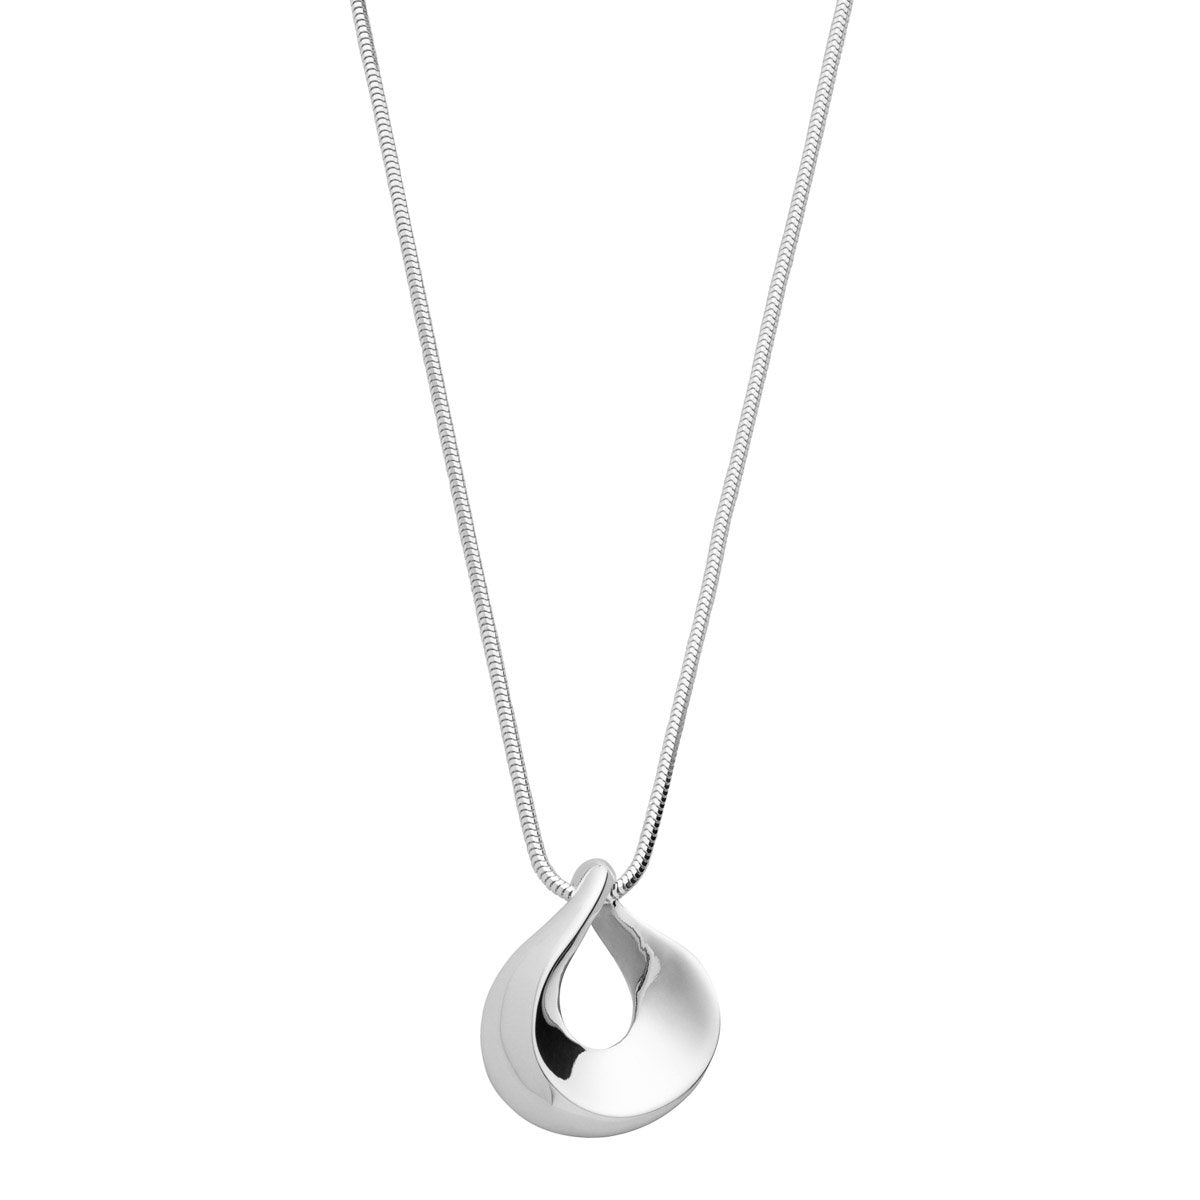 Najo N4146 Teardrops on my Chain Necklace